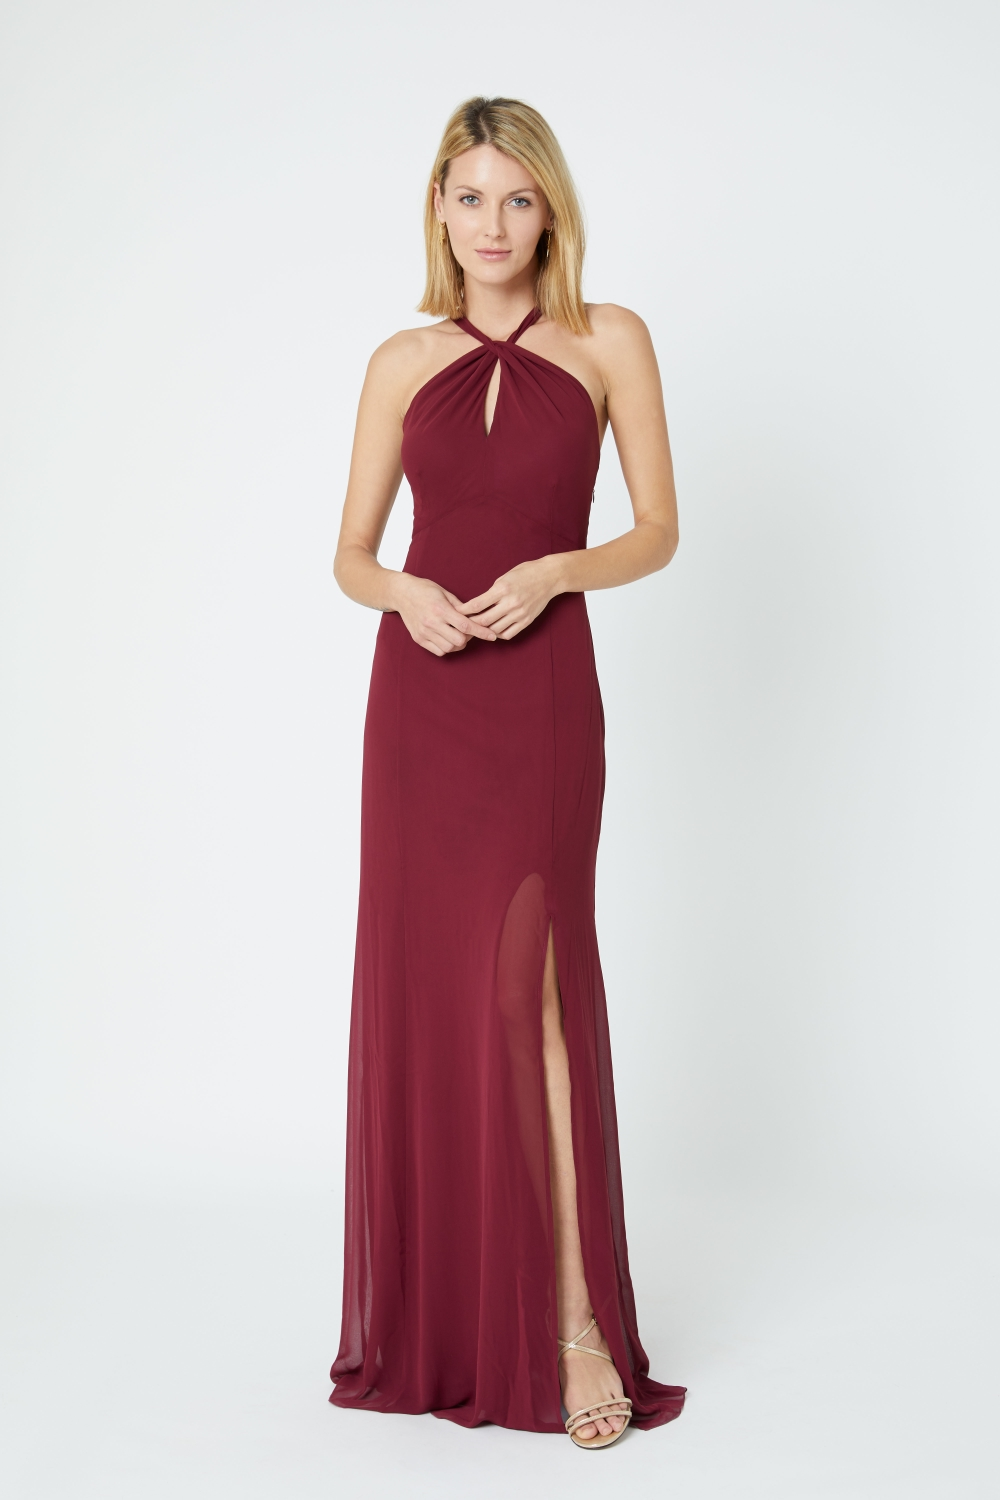 halterneck-bridesmaid-dress